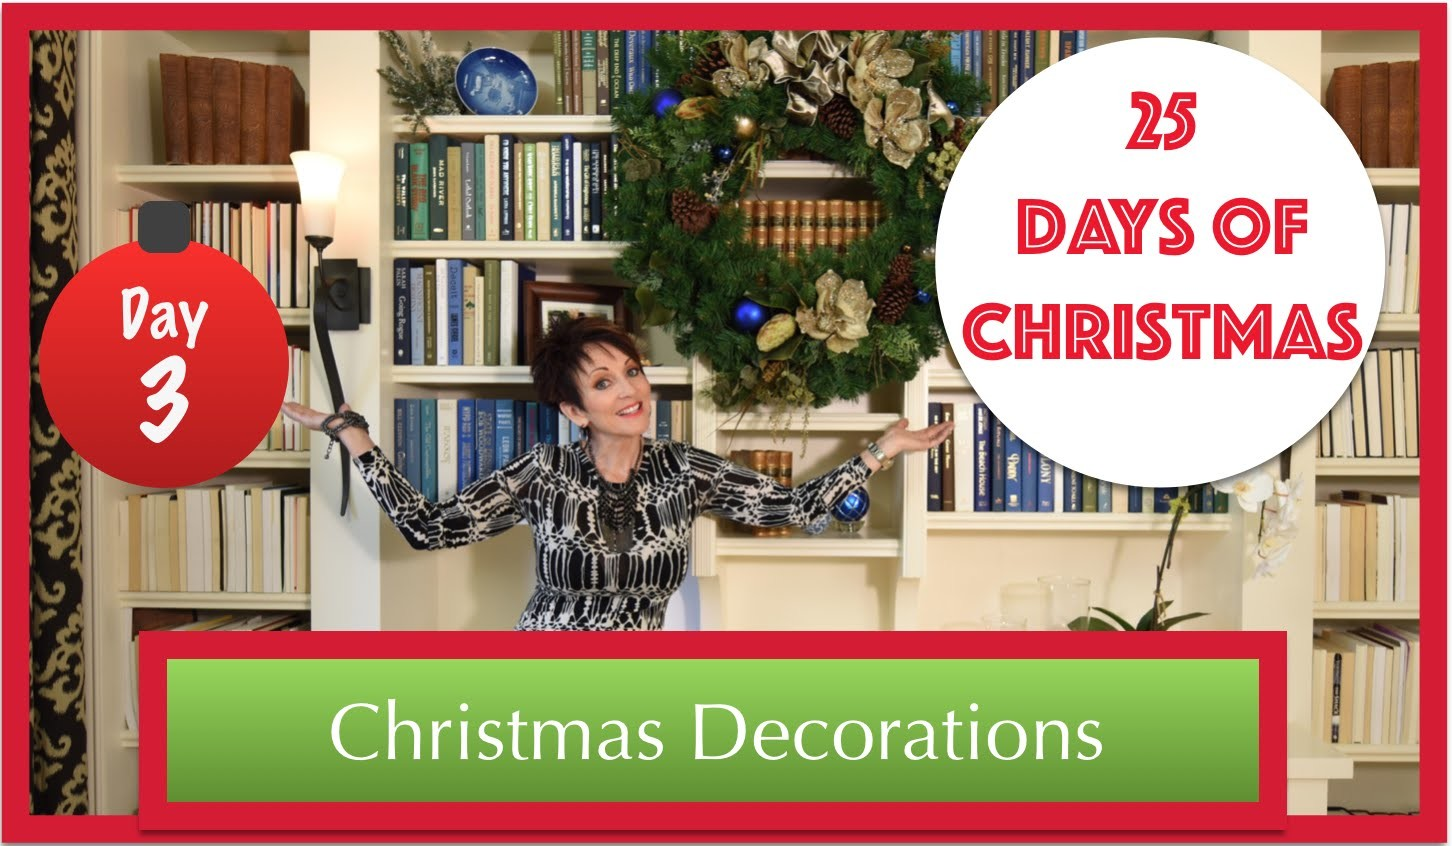 Decorate a Bookcase & Wreath for Christmas | 3rd Day of 25 Days of Christmas 2015!